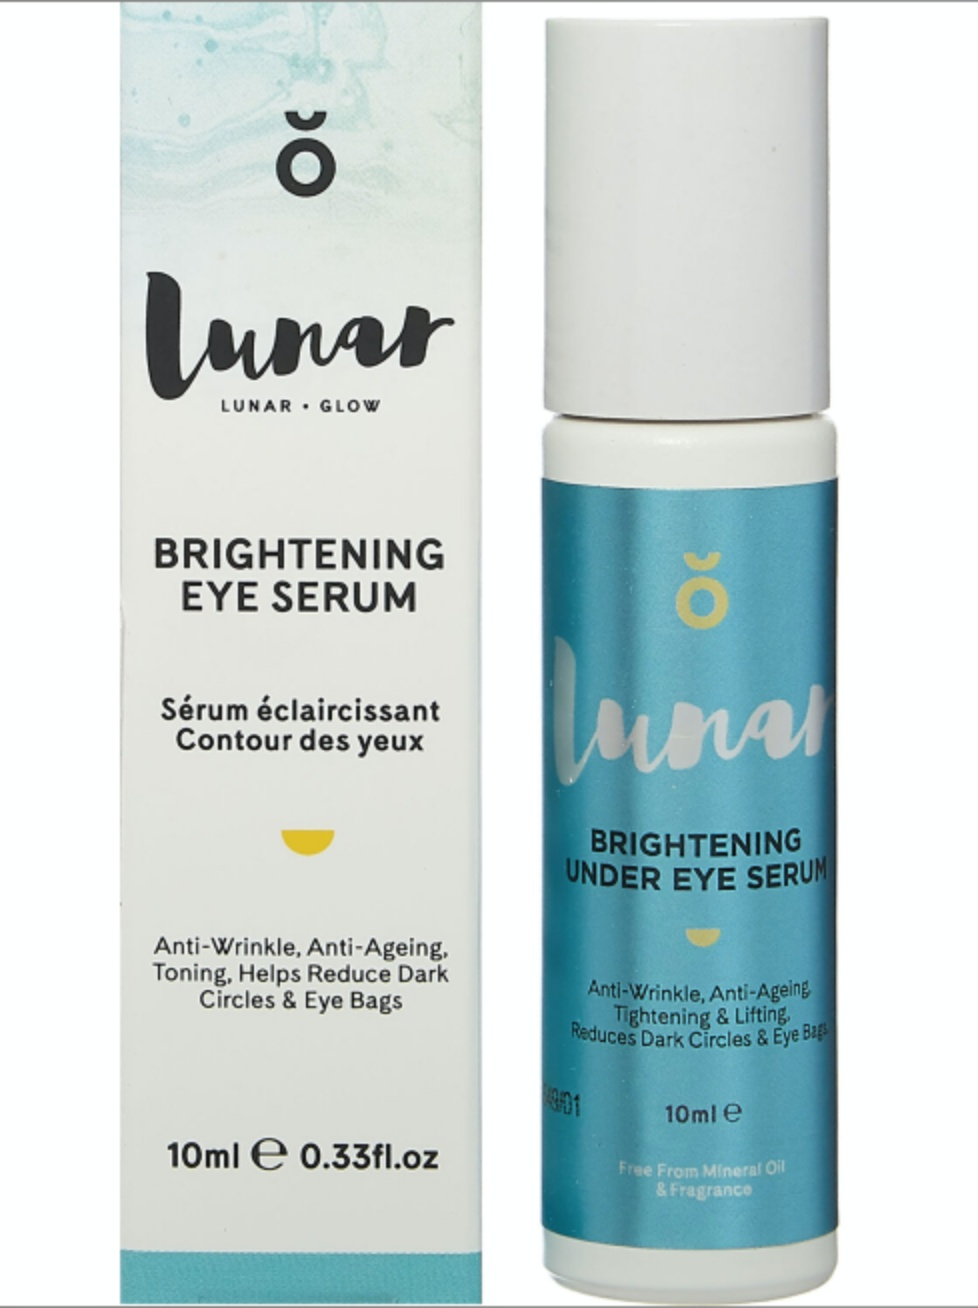 LUNAR Brightening Eye Serum